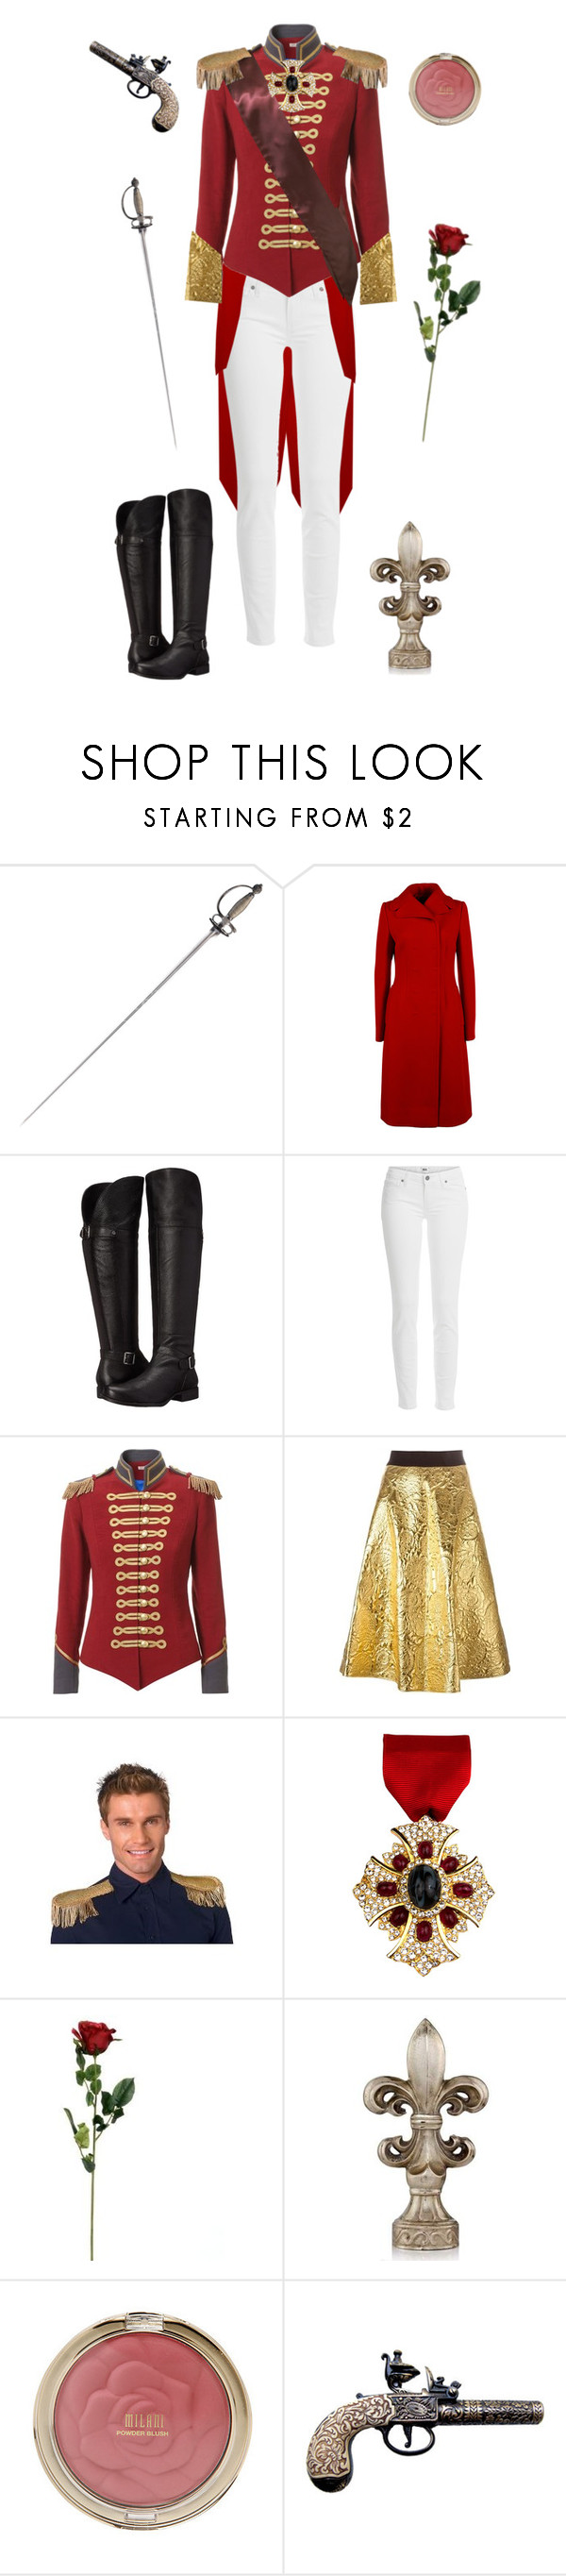 """""""Oscar François de Jarjayes- The Rose of Versailles"""" by conquistadorofsorts ❤ liked on Polyvore featuring Dolce&Gabbana, Naturalizer, Paige Denim, Pinky Laing, DKNY and Ben-Amun"""